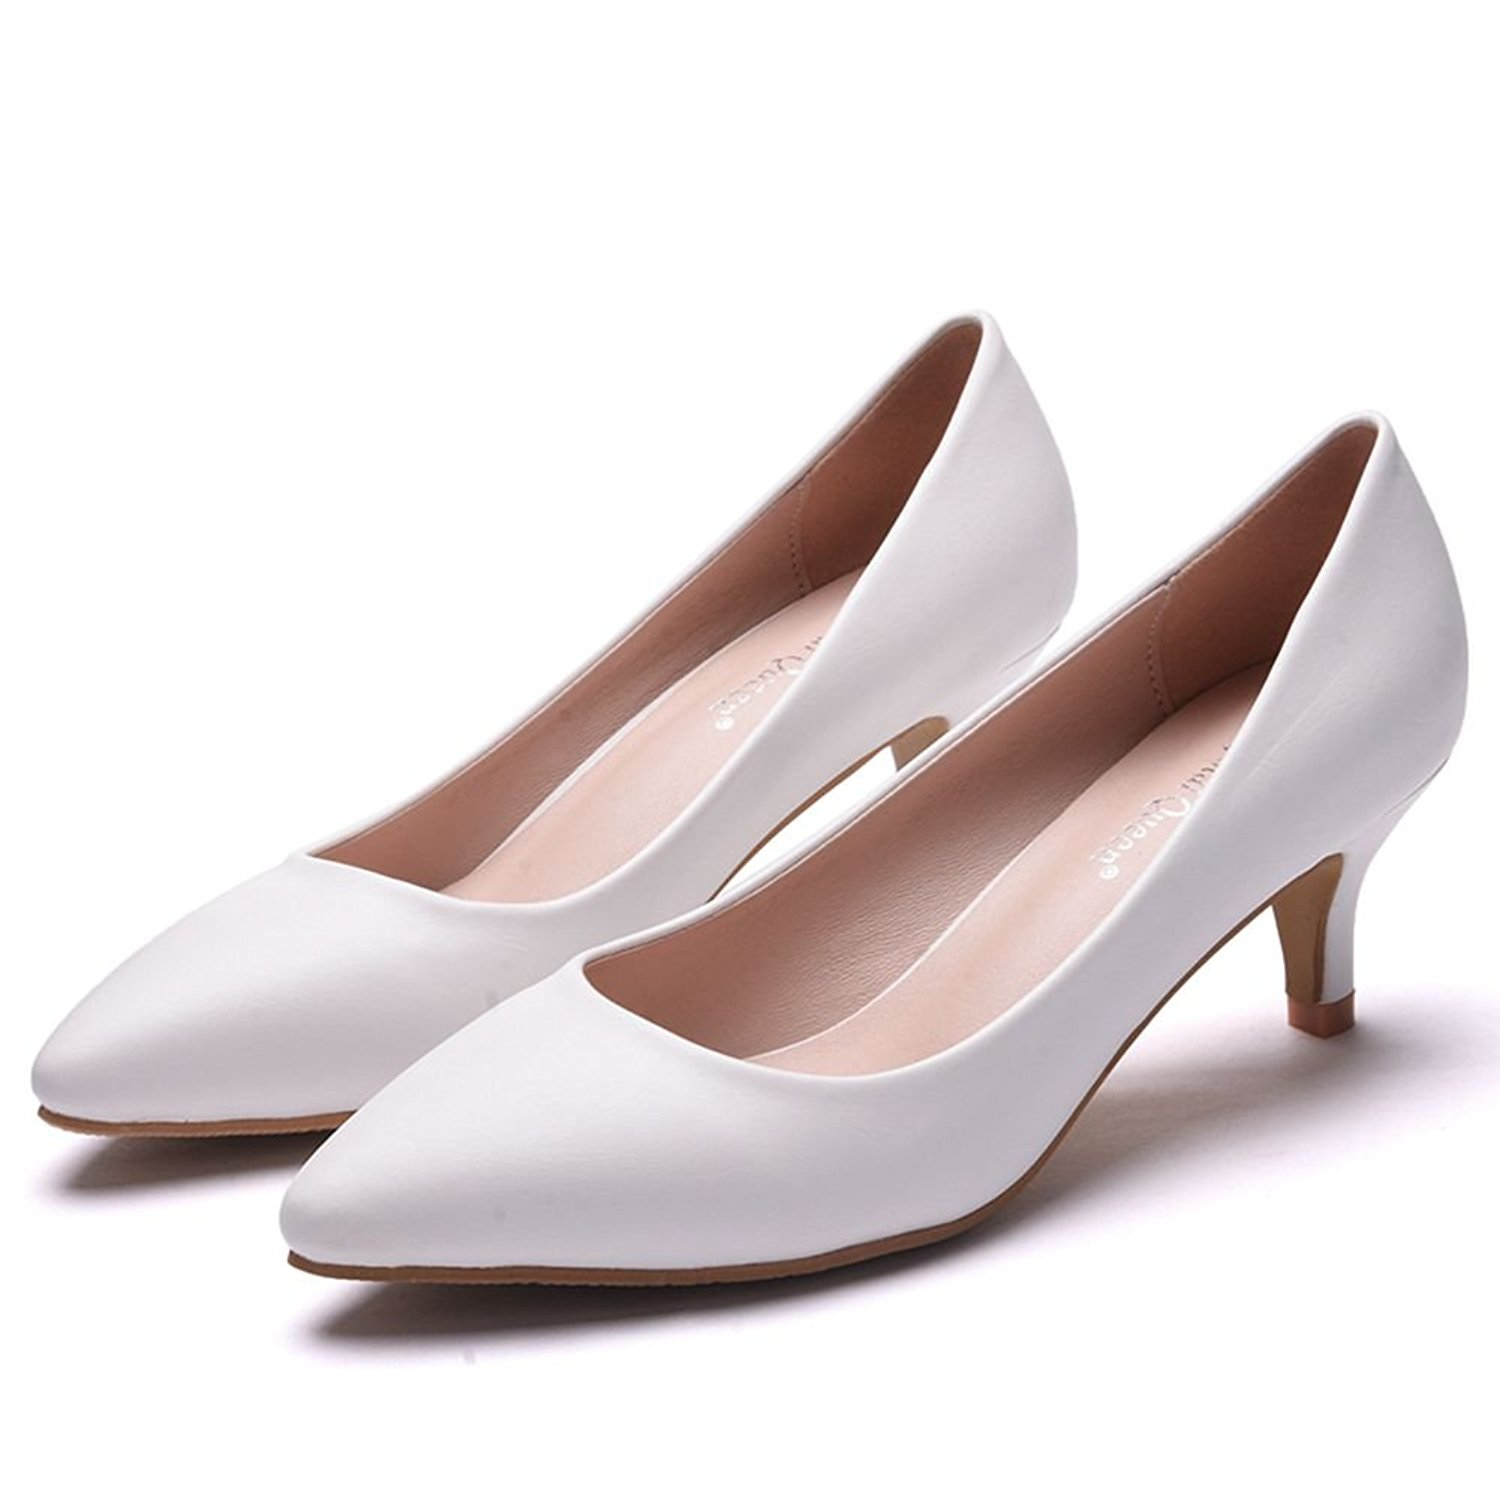 09ea925129a Get Quotations · 5CM Thick Heel Shoes Low Kitten Heel Pumps for Women Black Pointed  Toe Dress Shoes White